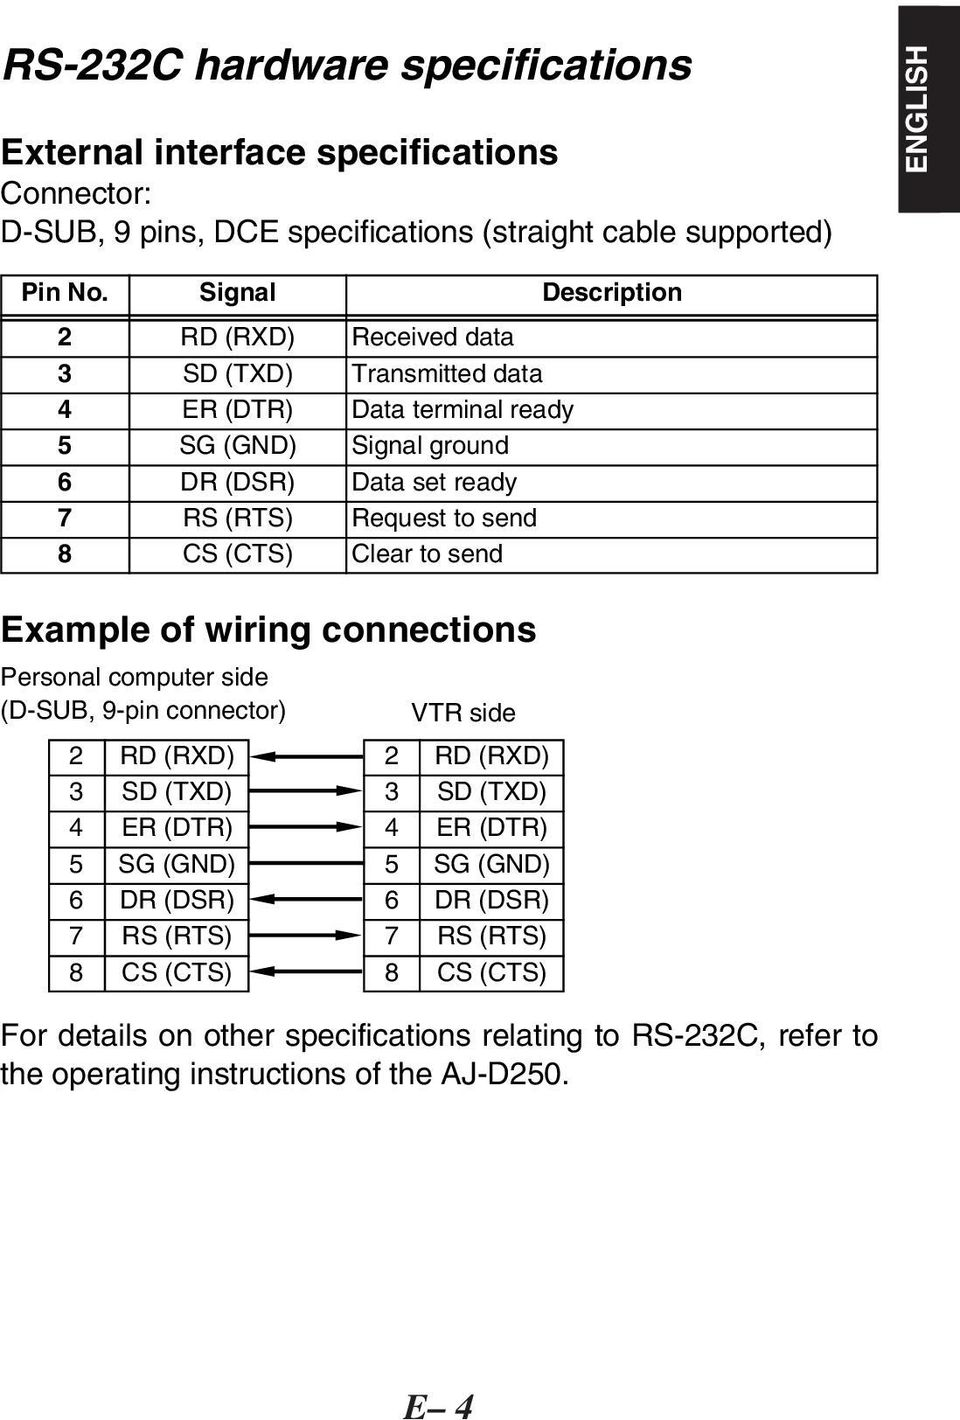 send 8 CS (CTS) Clear to send Example of wiring connections Personal computer side (D-SUB, 9-pin connector) 2 RD (RXD) 3 SD (TXD) 4 ER (DTR) 5 SG (GND) 6 DR (DSR) 7 RS (RTS) 8 CS